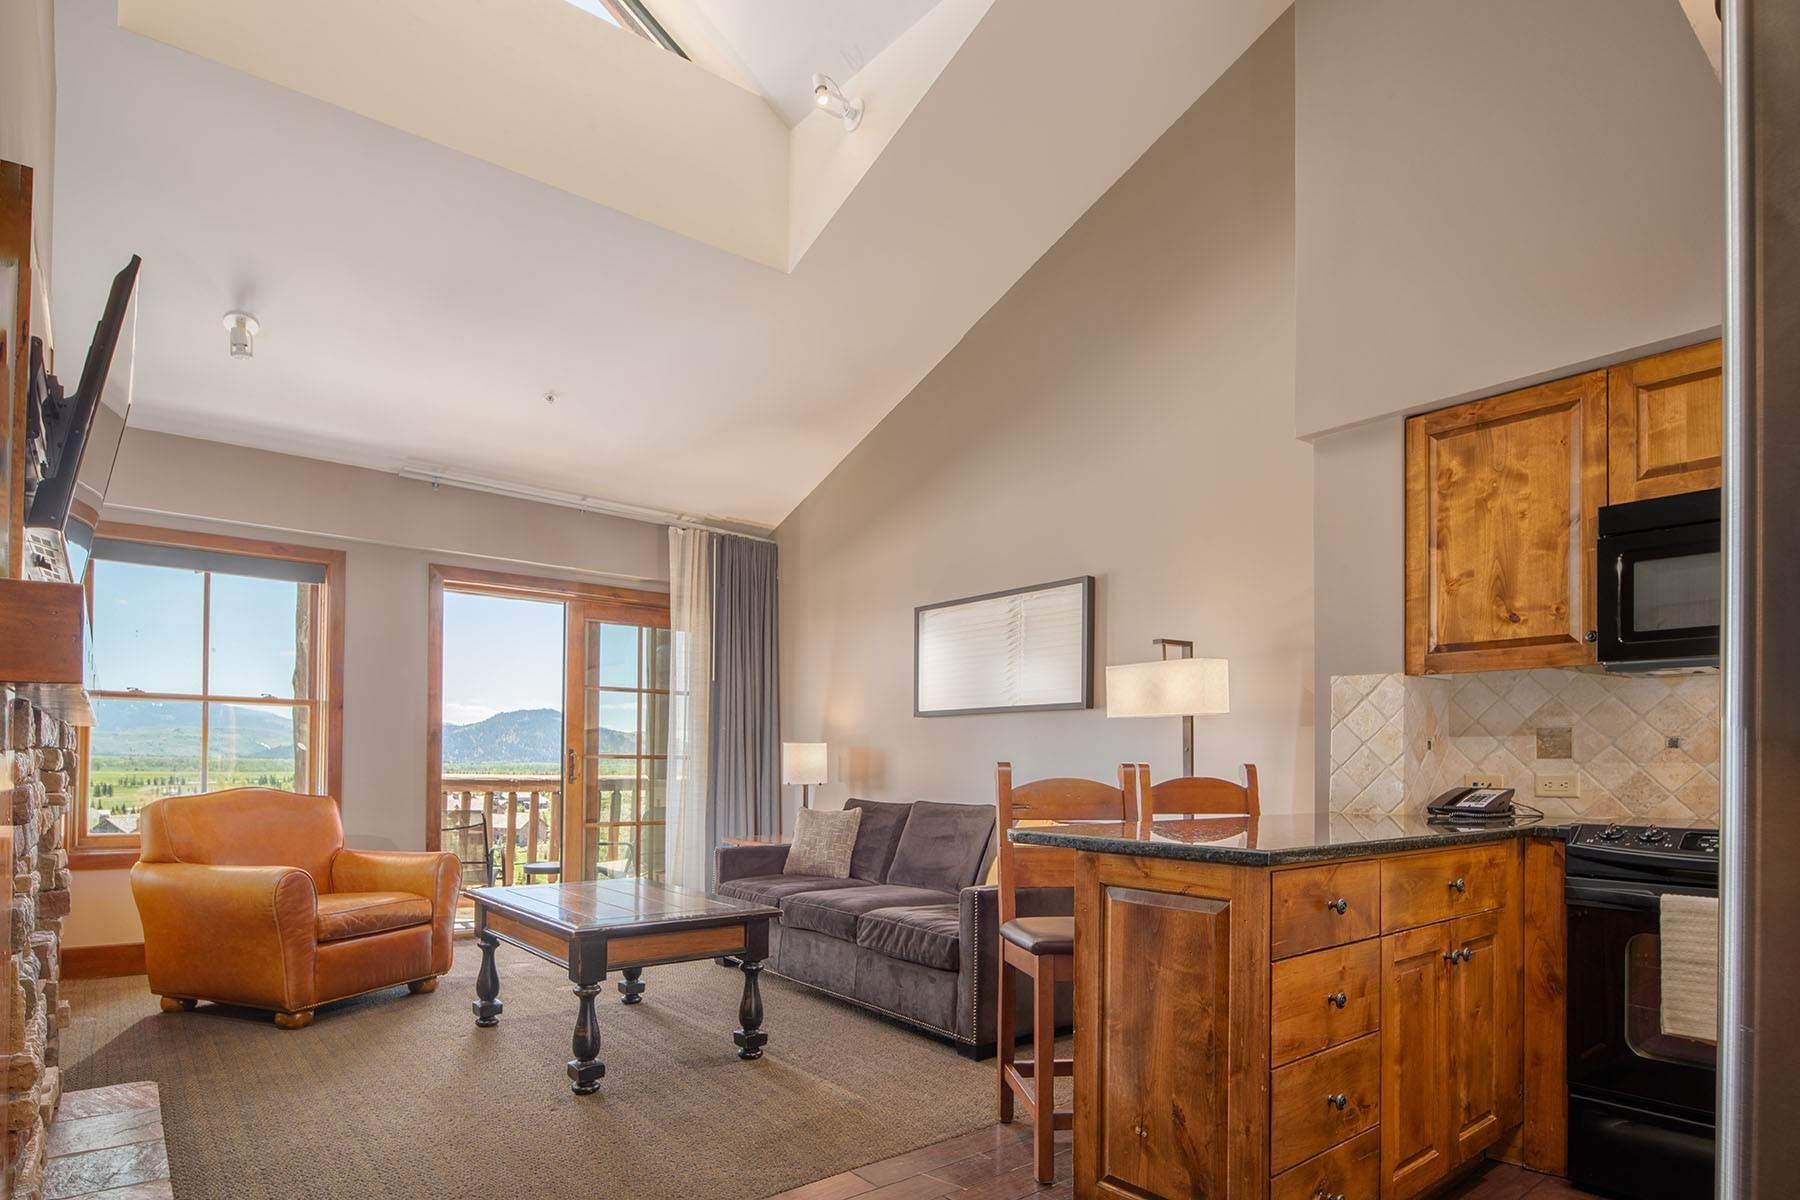 Condominiums por un Venta en Slopeside Penthouse 3385 W Village Drive, #421 Teton Village, Wyoming 83025 Estados Unidos